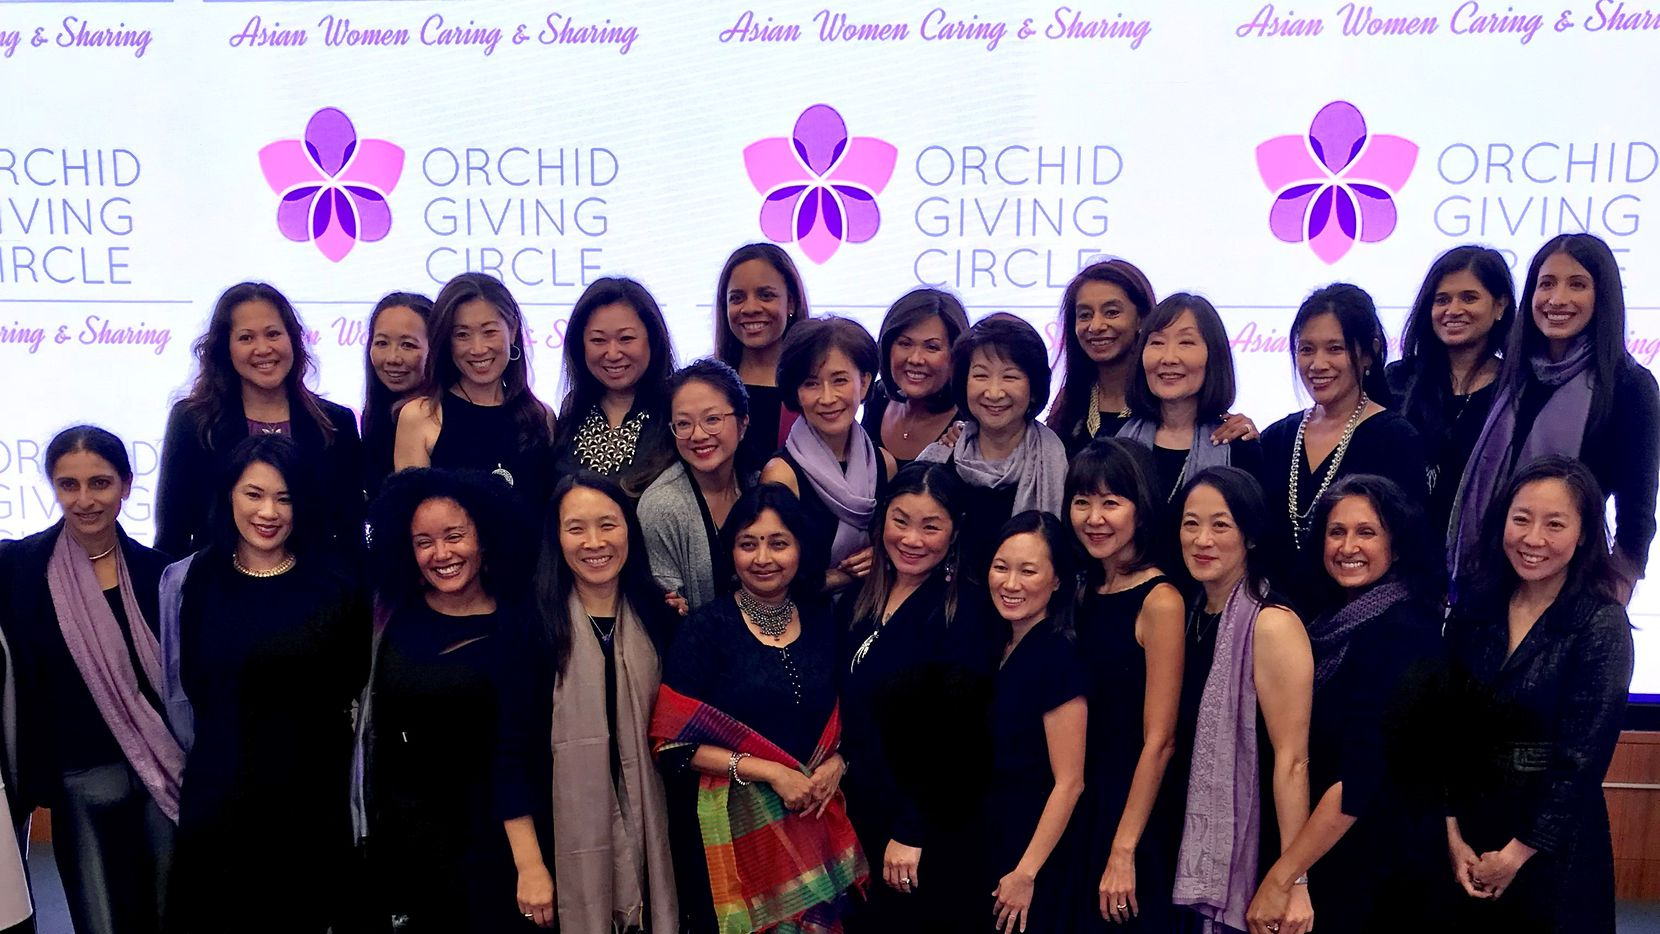 Members of the Orchid Giving Circle of Dallas held a grant presentation event Friday Oct. 12 at Toyota headquarters in Plano.